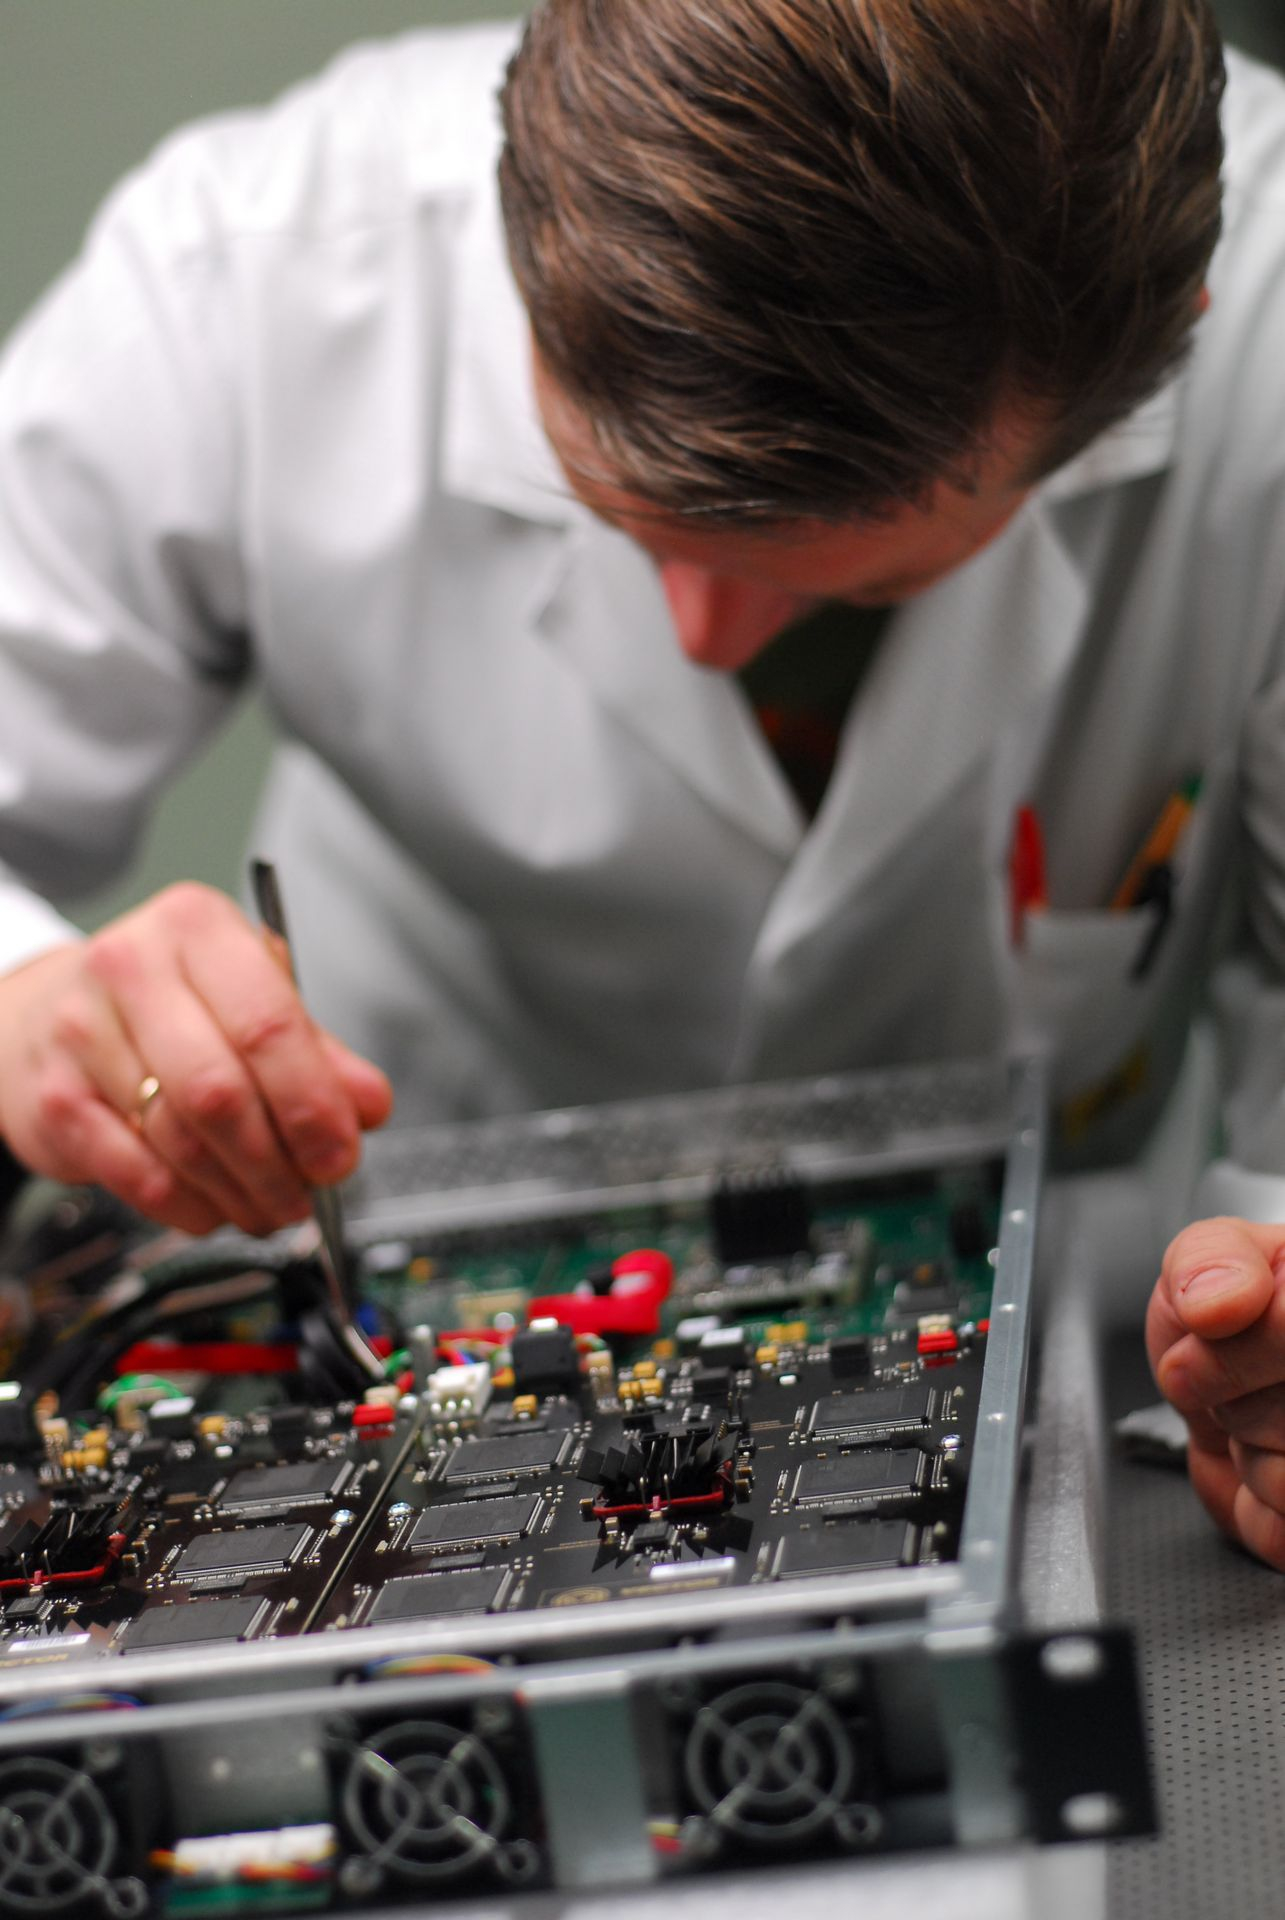 hardware-test-engineer-during-quality-control